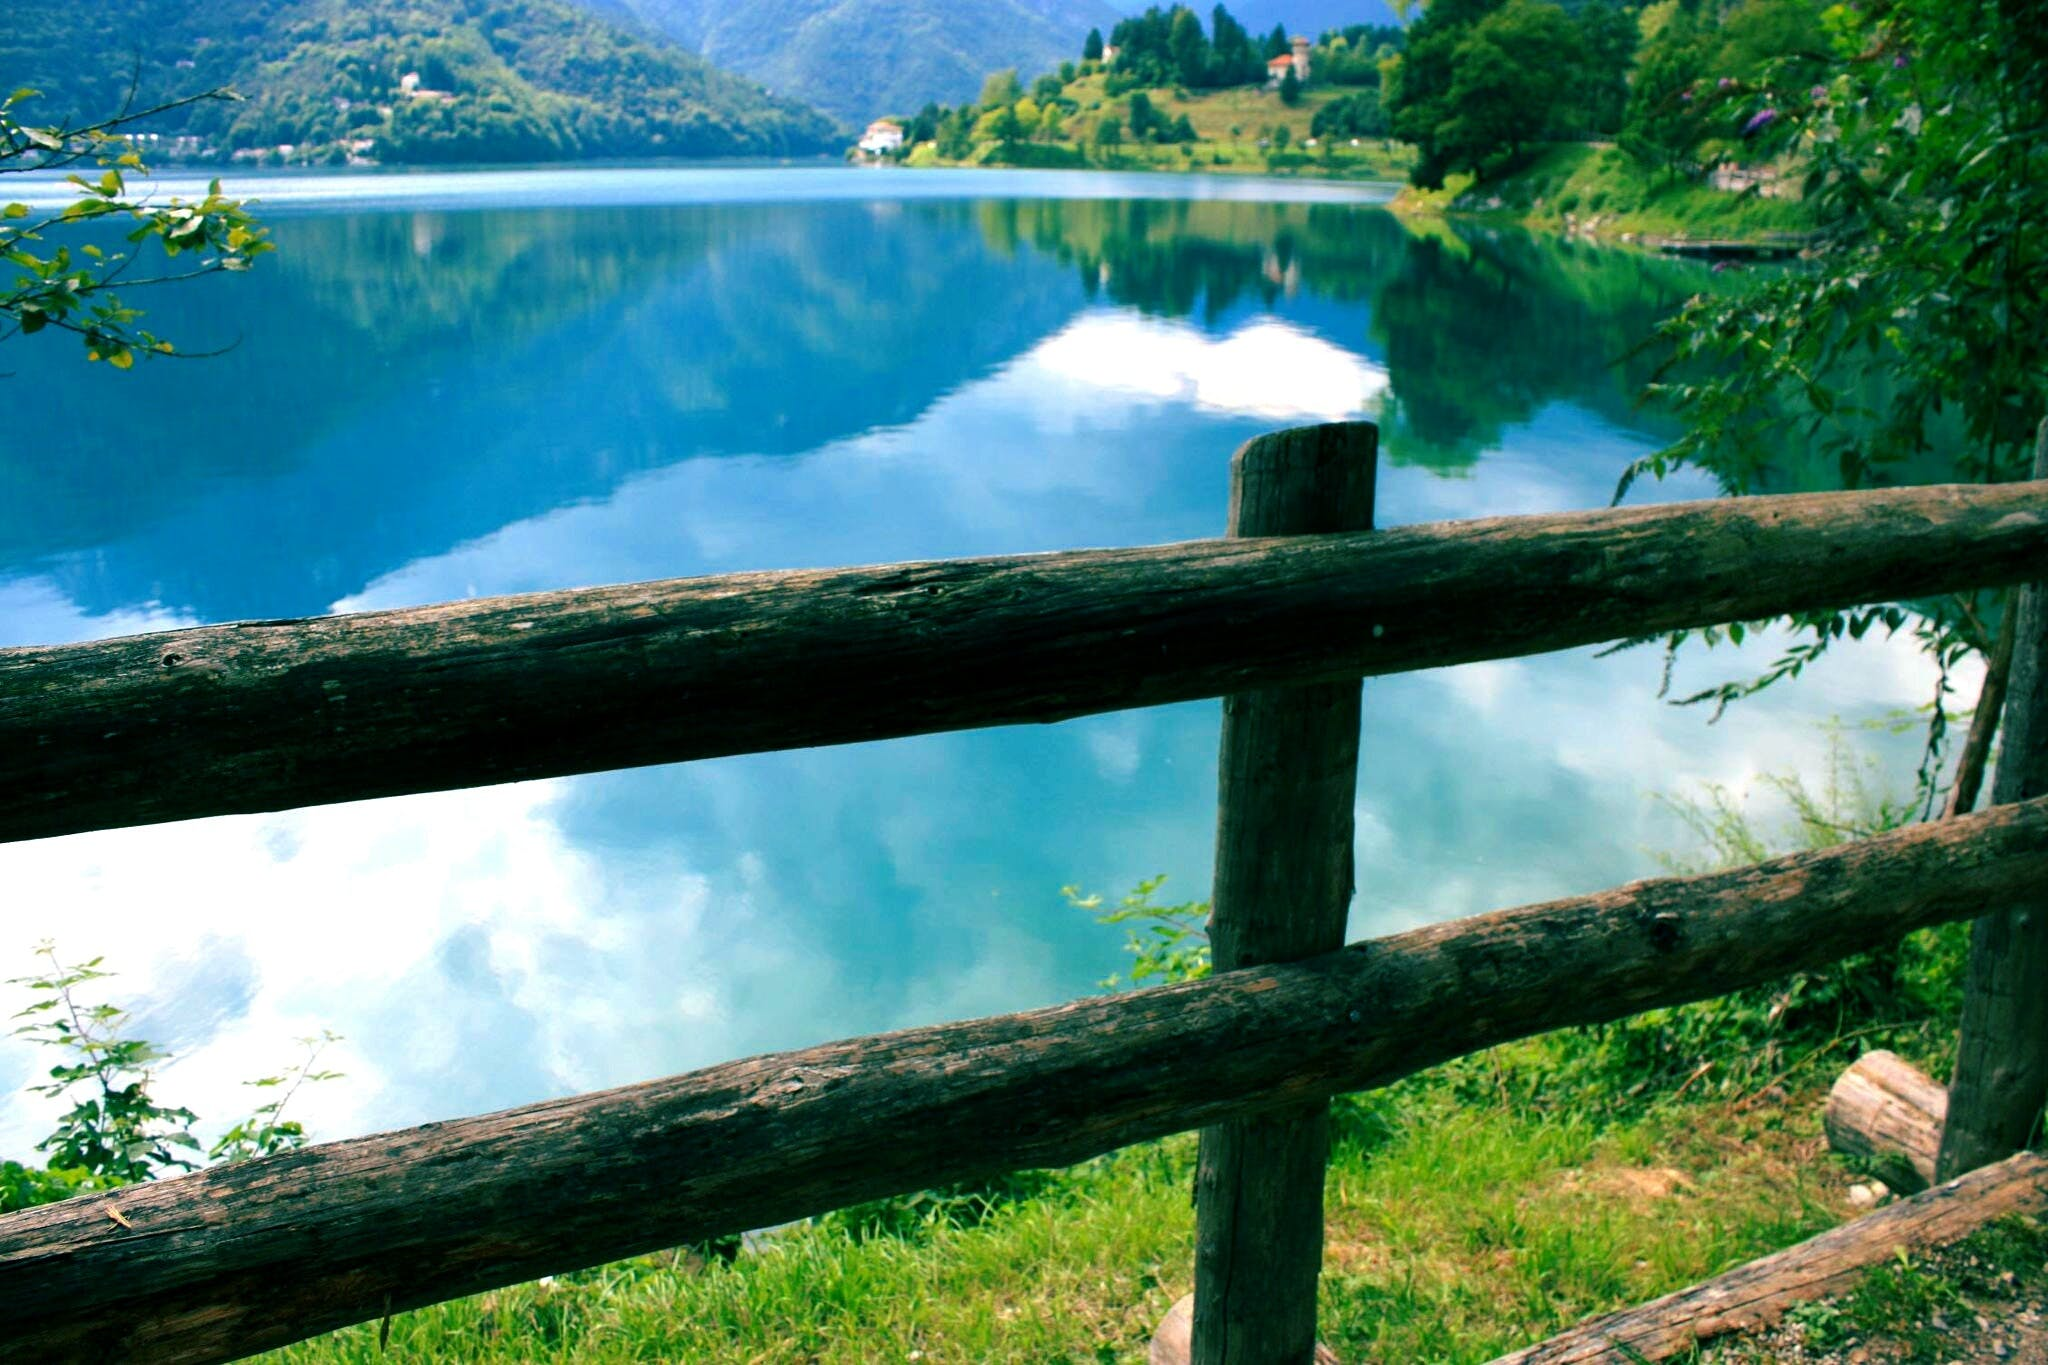 Green Wooden Fence Beside Body of Water